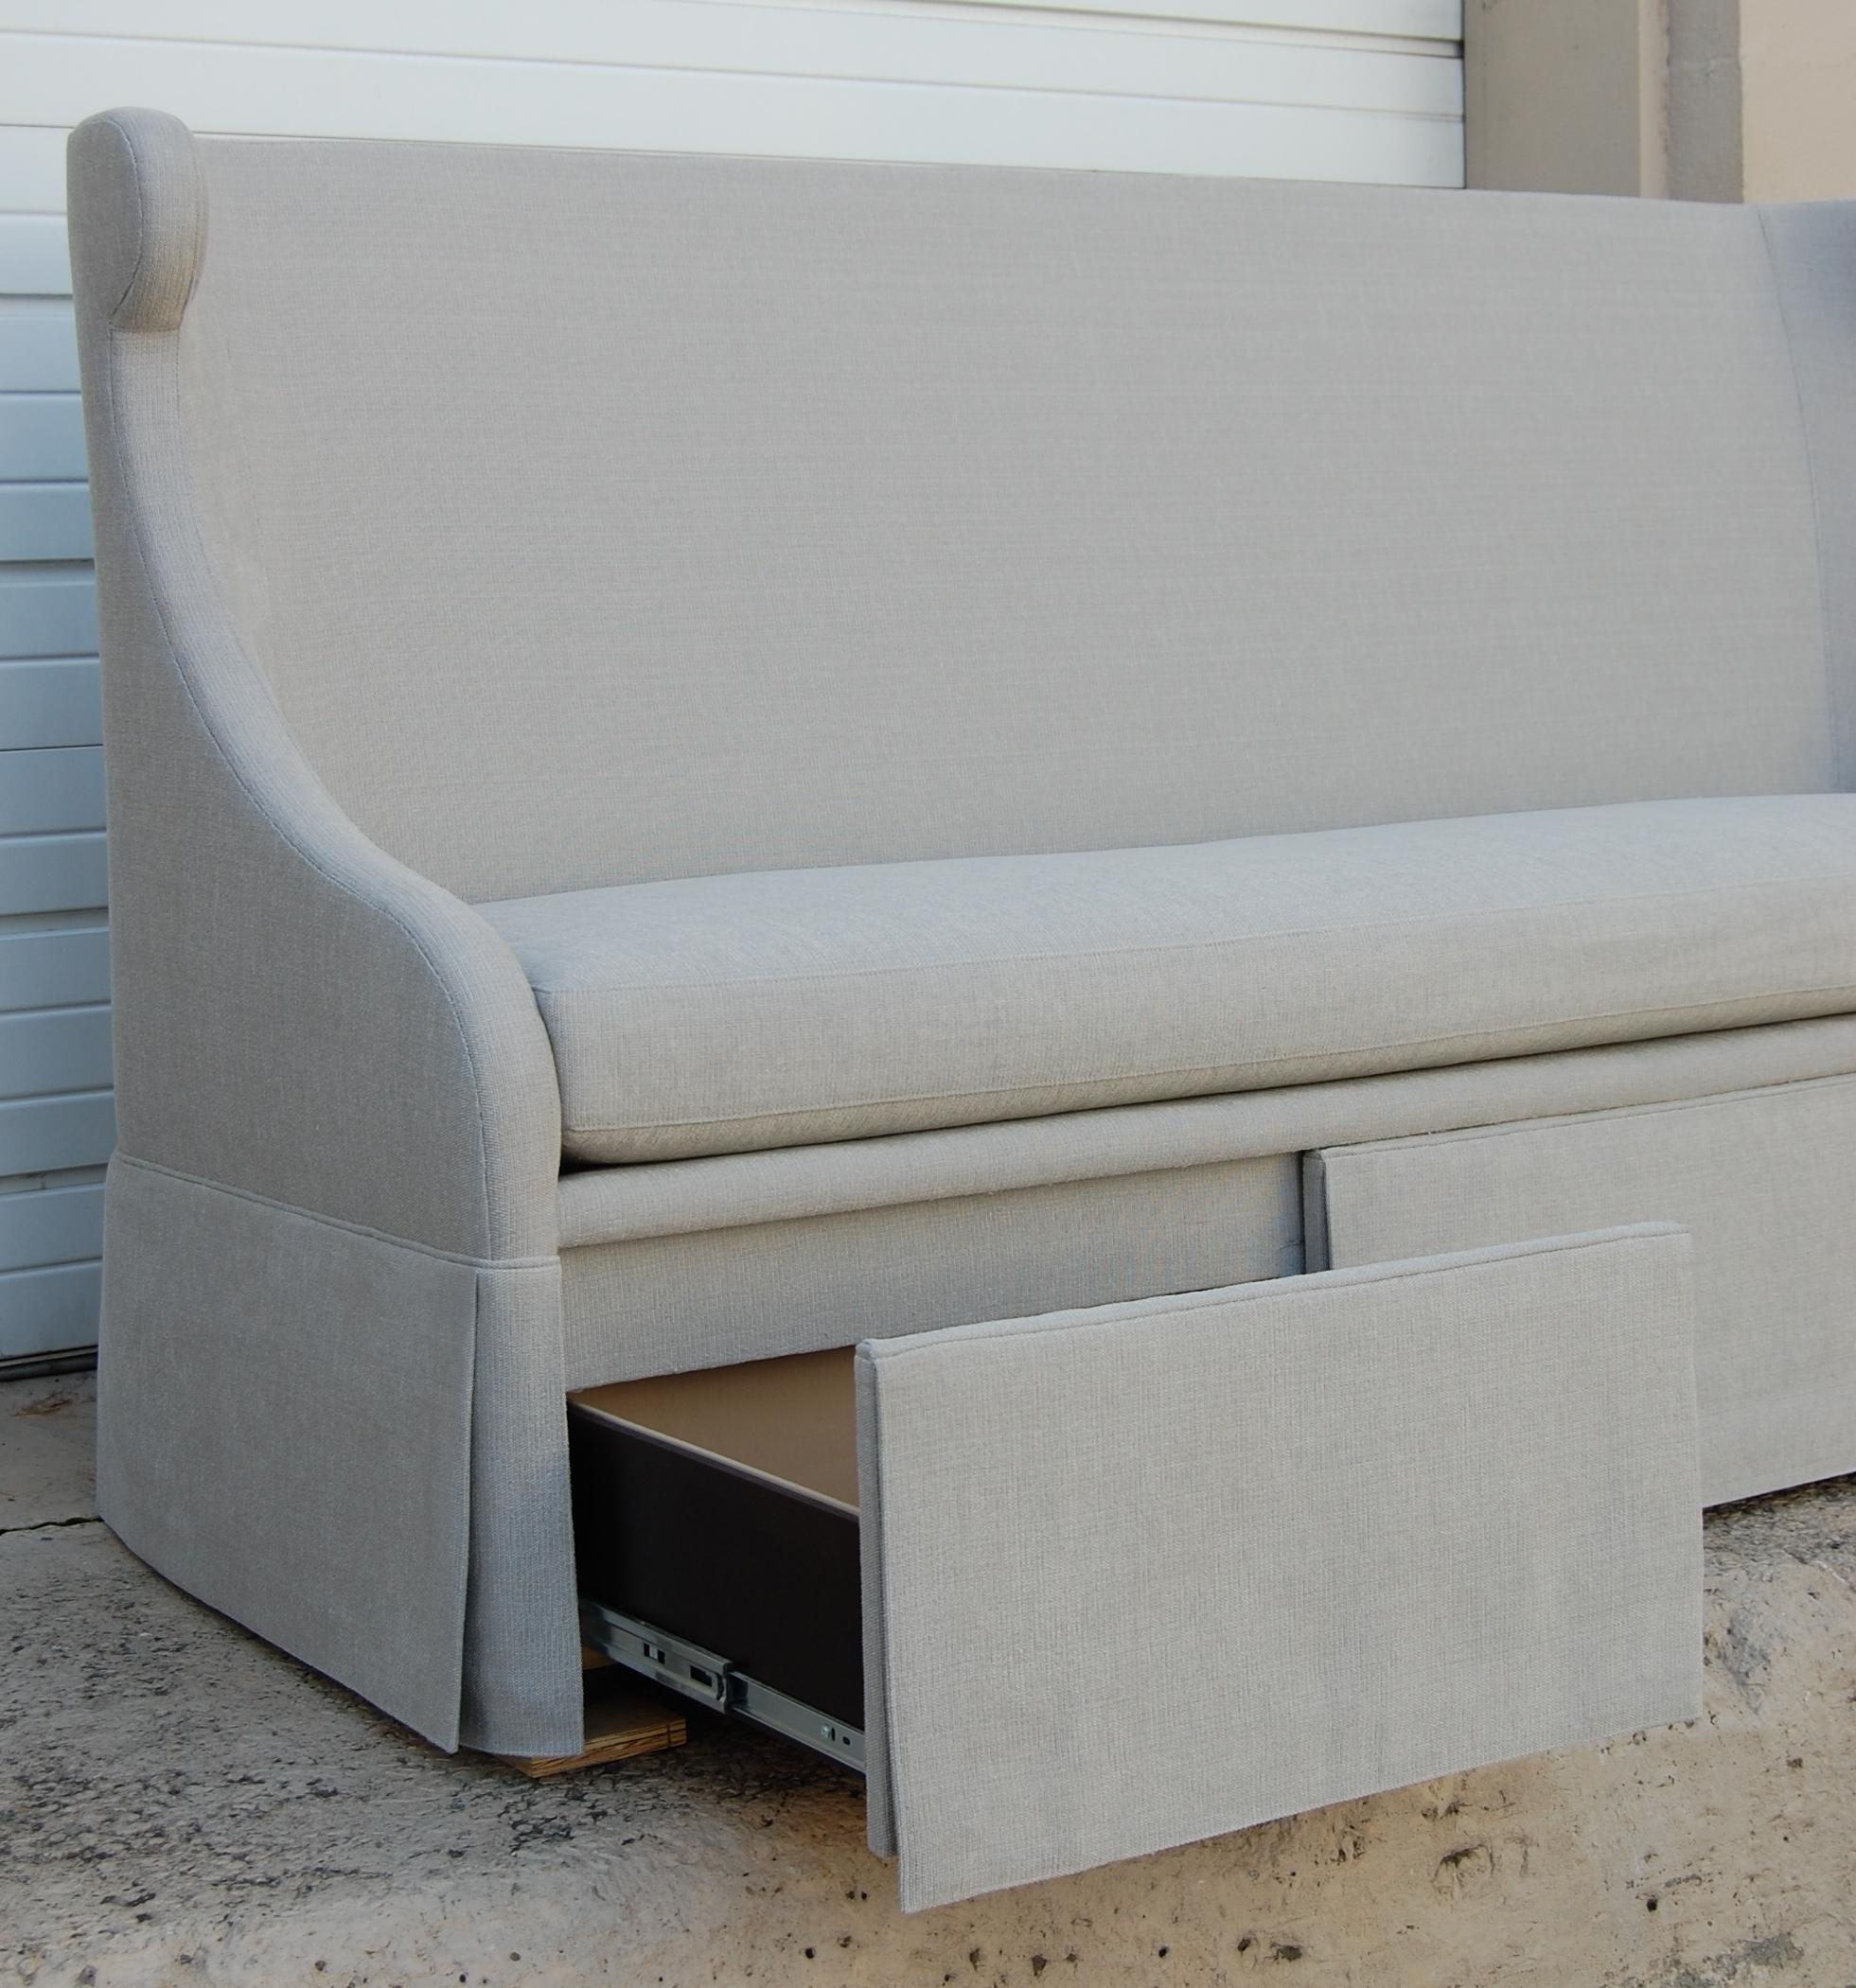 Sofa Banquette Images – Banquette Design Throughout Banquette Sofas (Image 19 of 20)